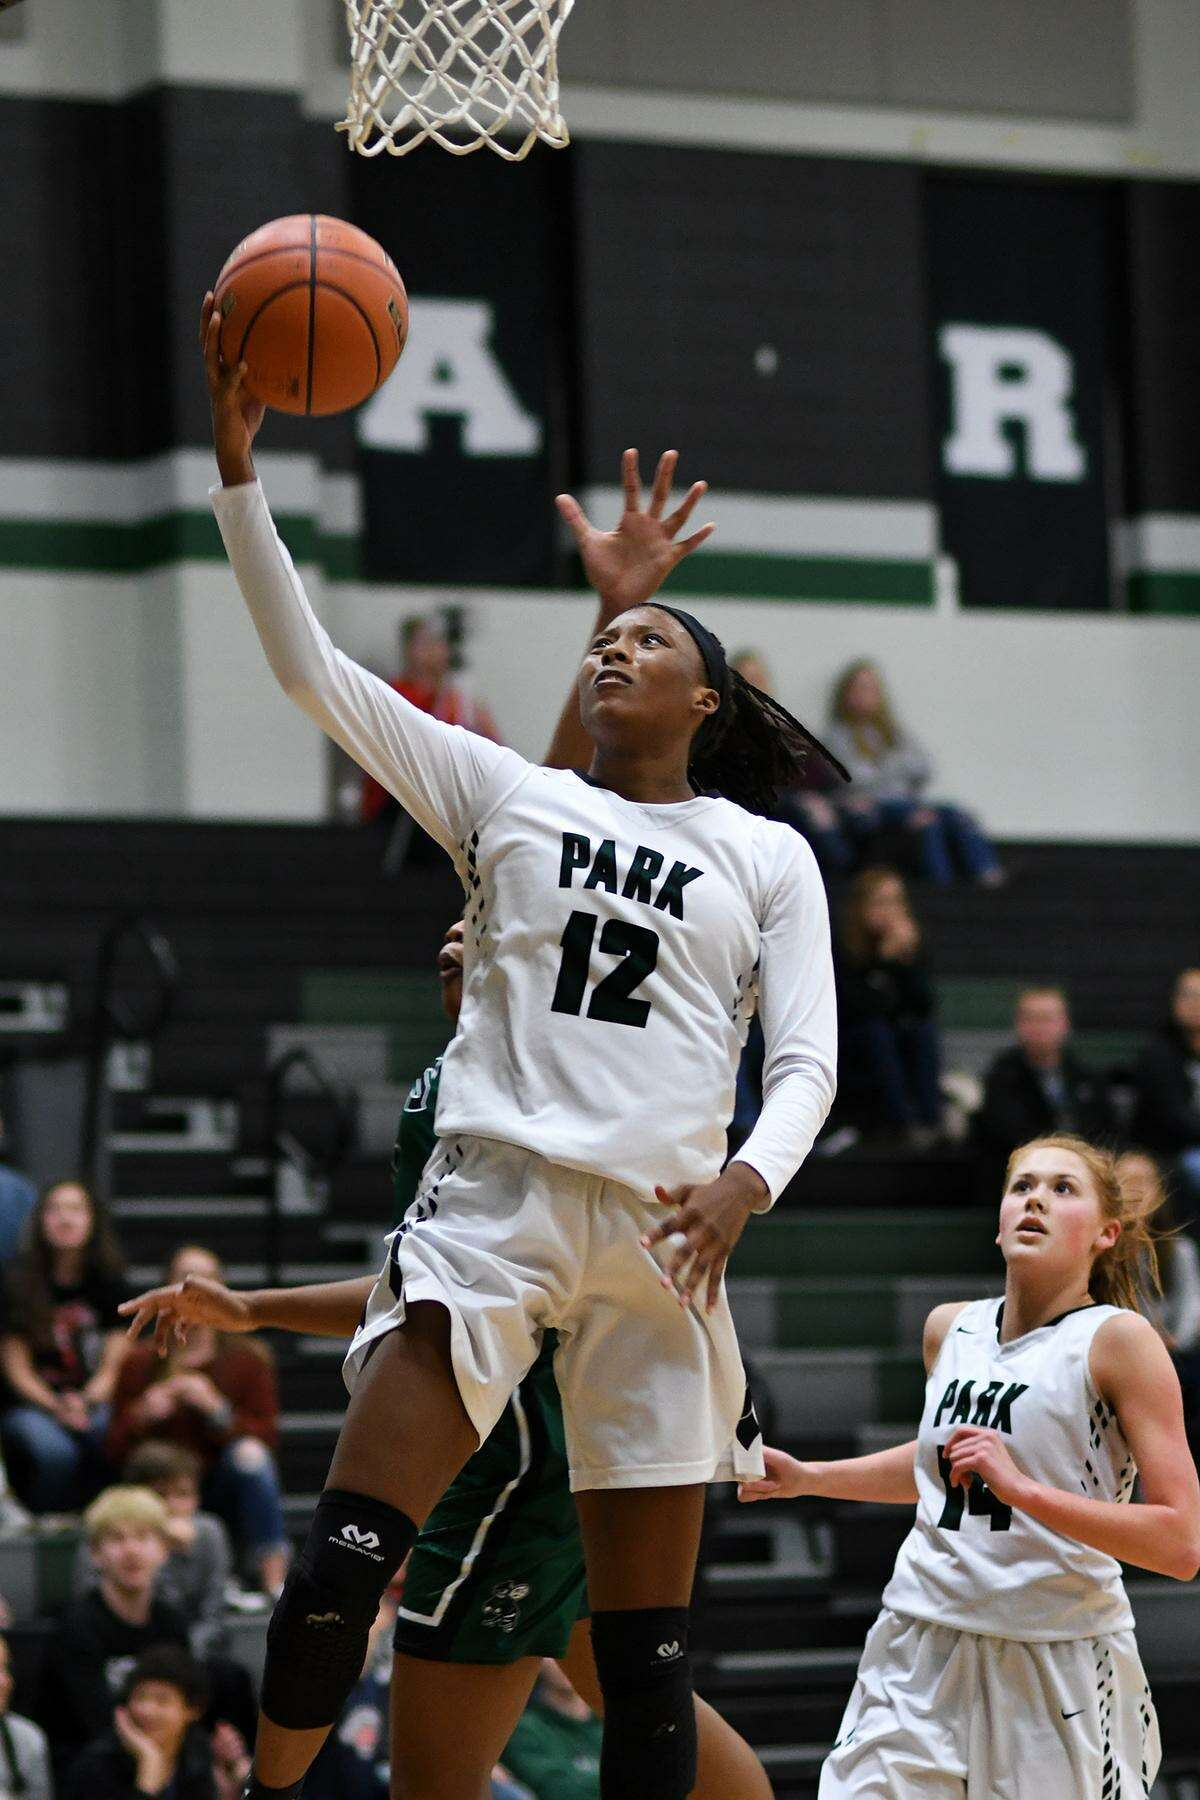 Kingwood Park's Allie Byrd (12) drives to the hoop against Huntsville during the first quarter of their District 20-5A matchup at Kingwood Park High School on January 4, 2019.